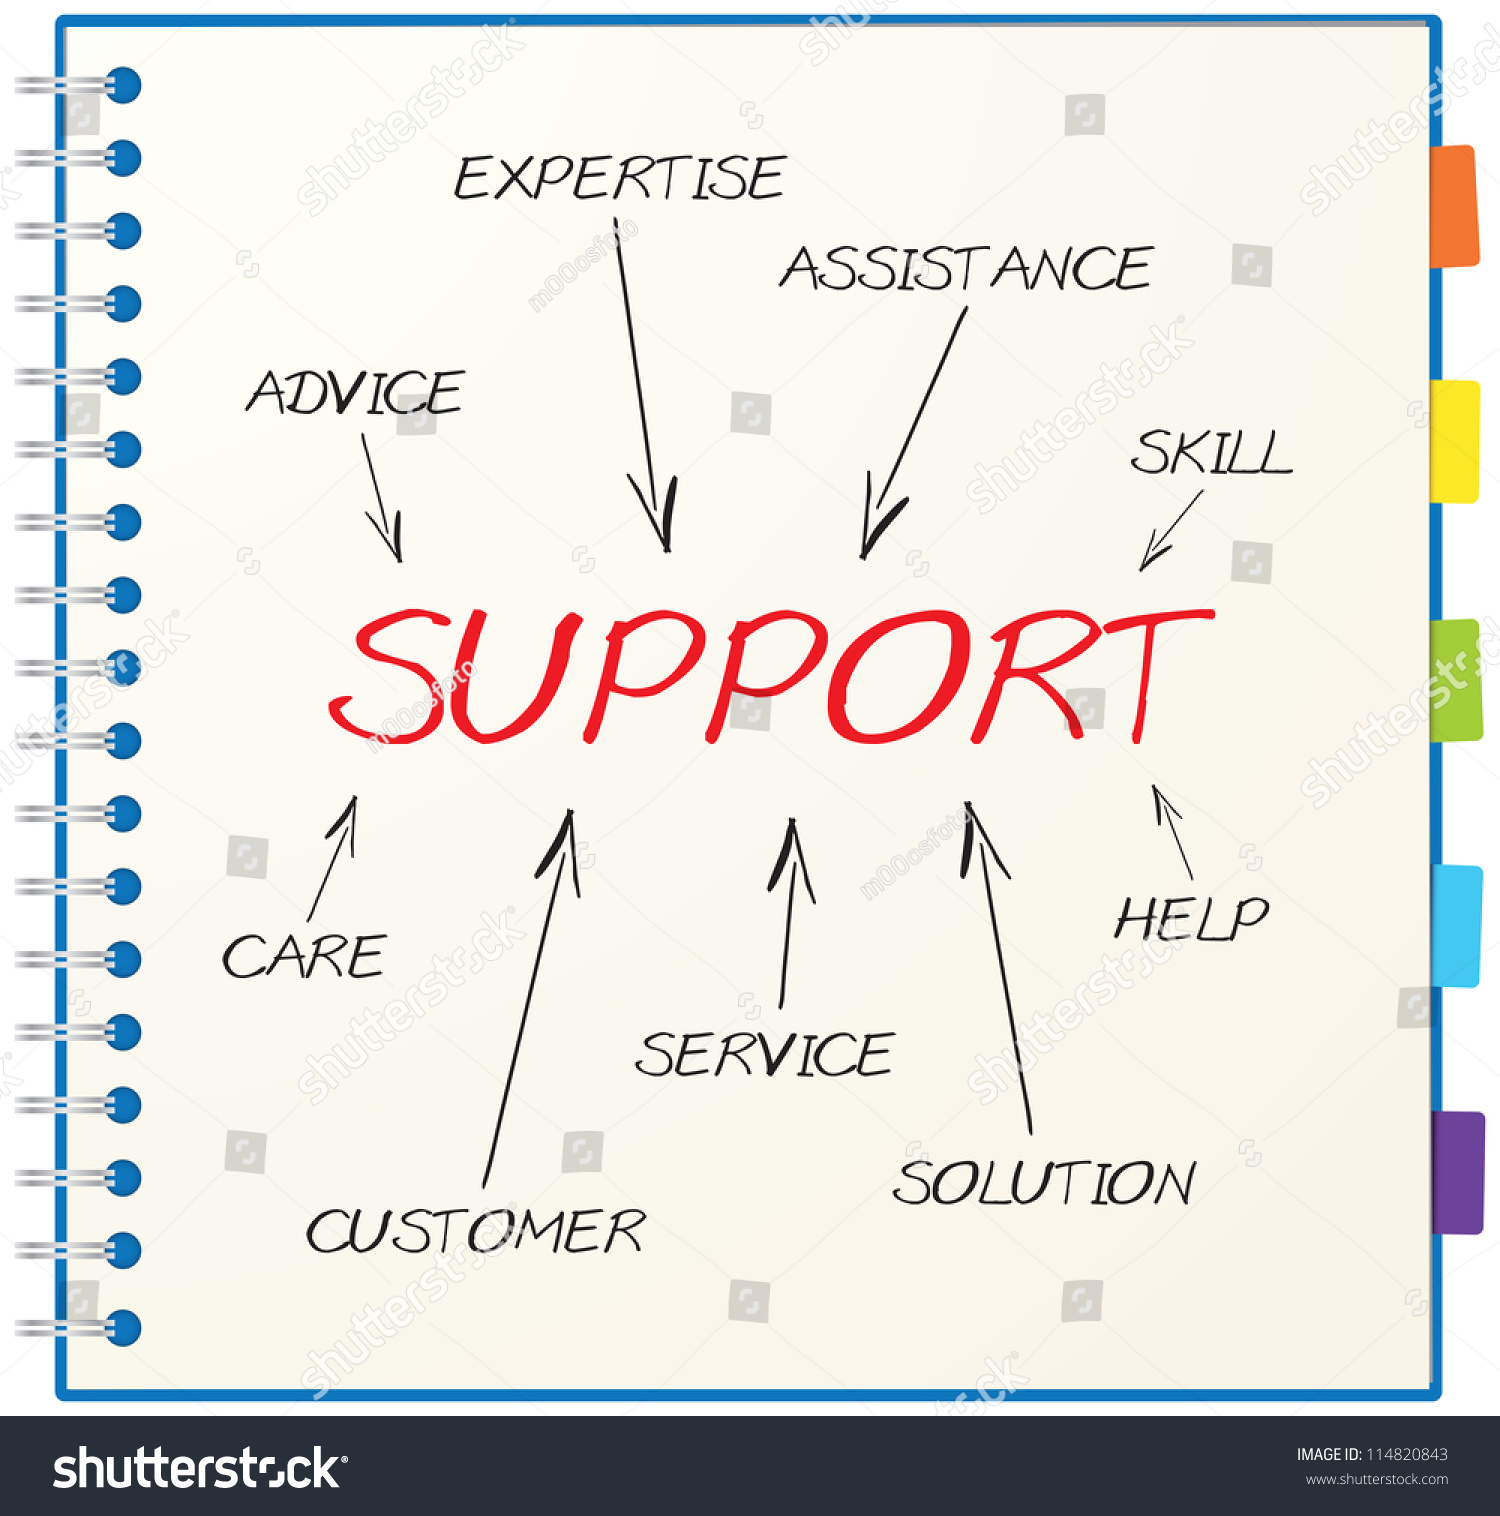 concept support consists skill expertise advice stock illustration concept of support consists of skill expertise advice solution help customer